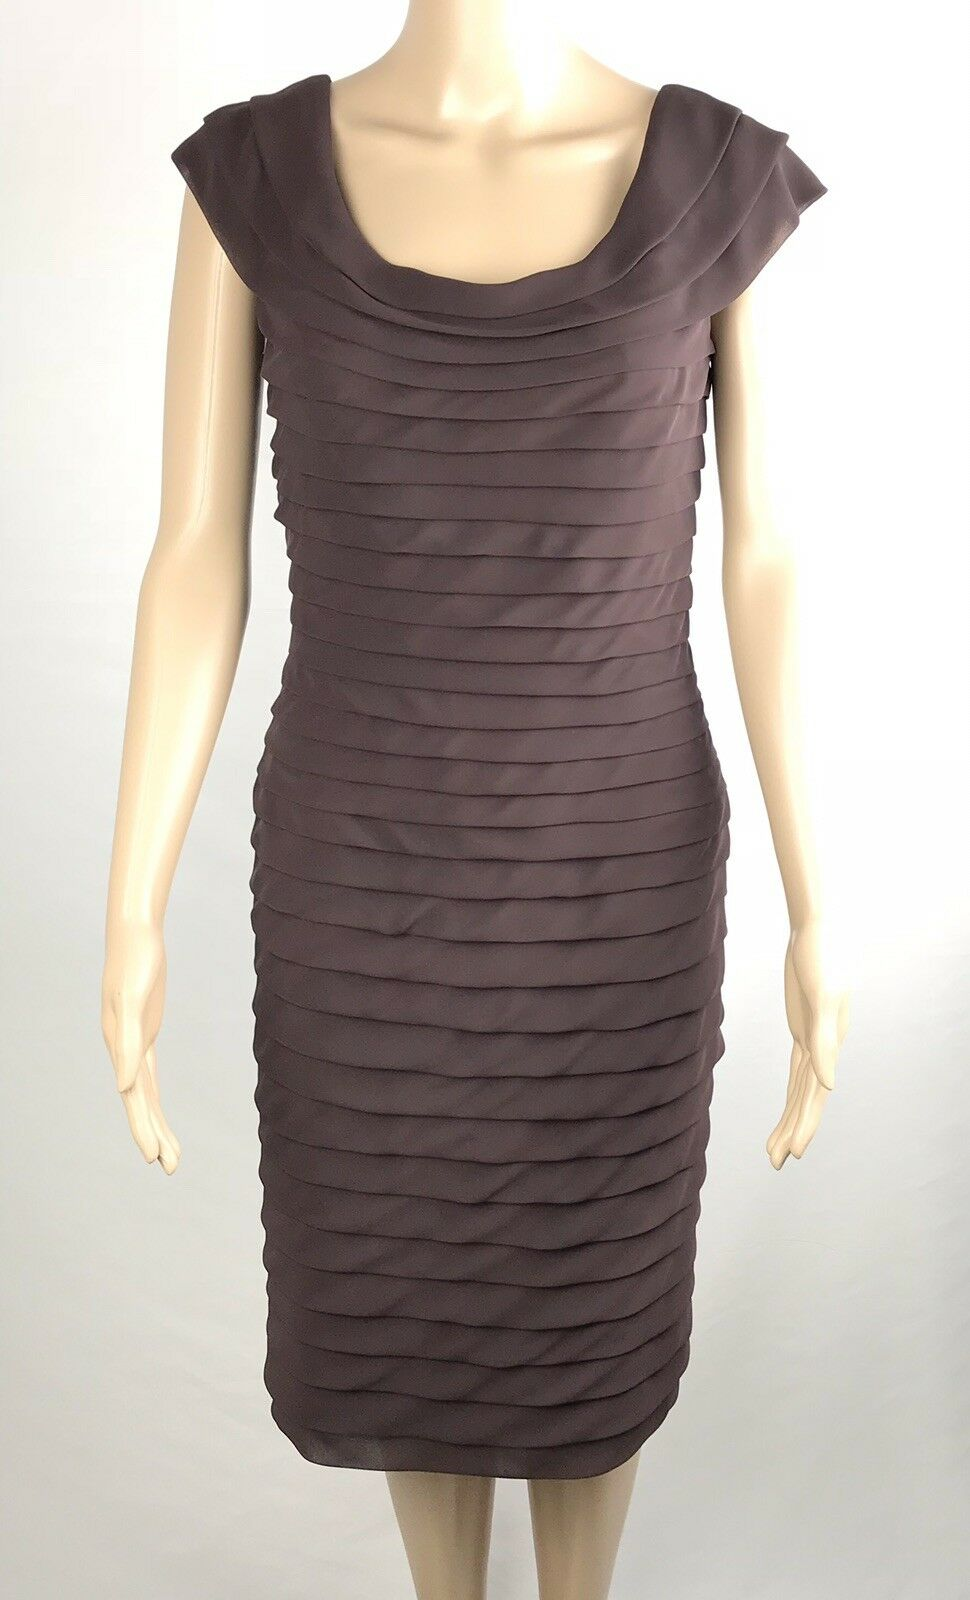 Adrianna Papell Mint Women's Brown Dress Size 6 Fully Tiered Holidays Party